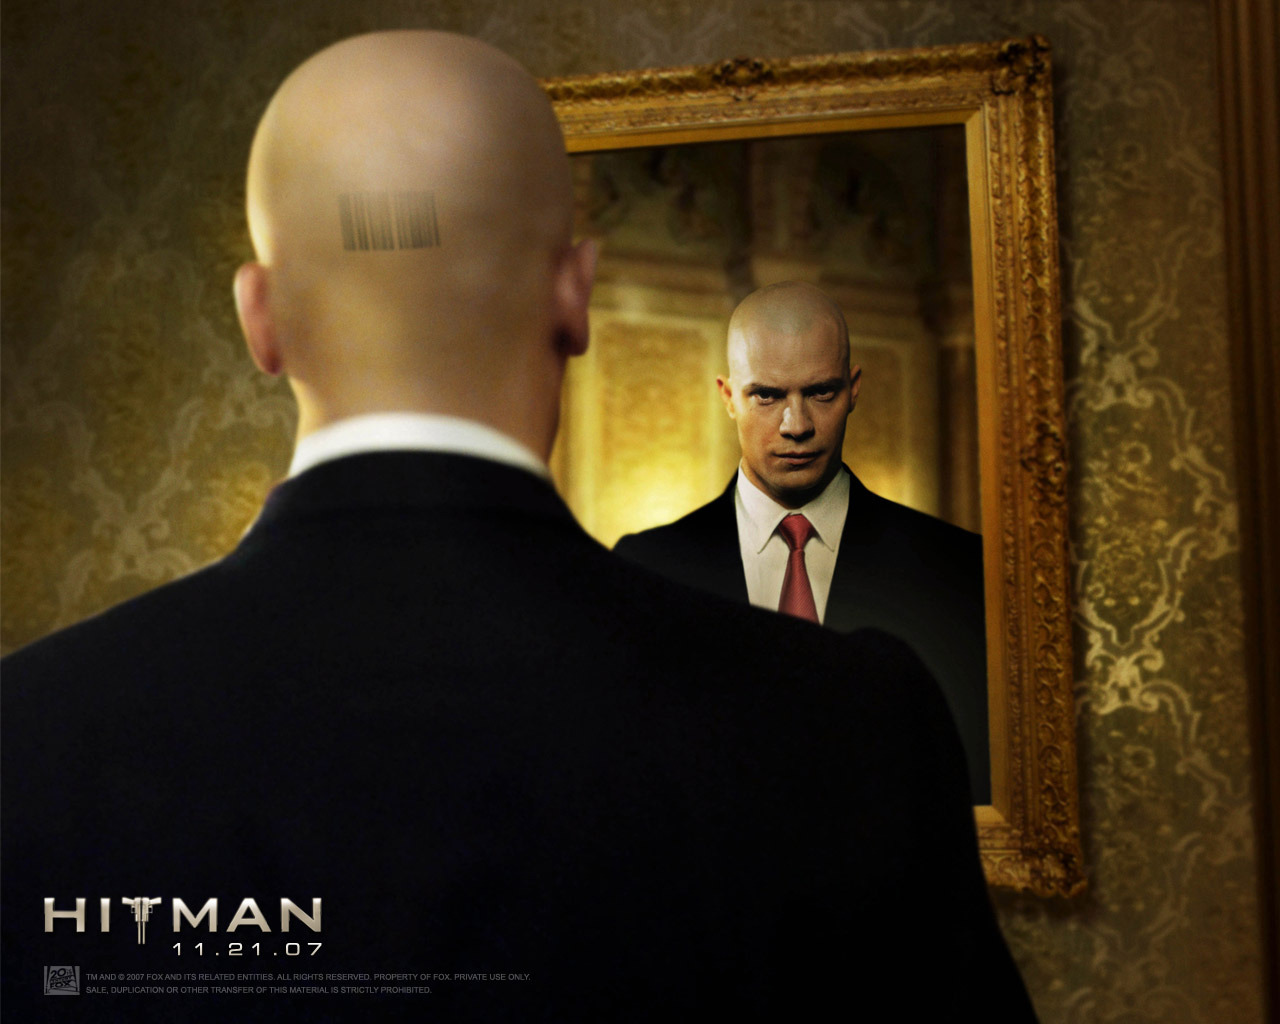 Hitman Movie Wallpapers Wallpaper